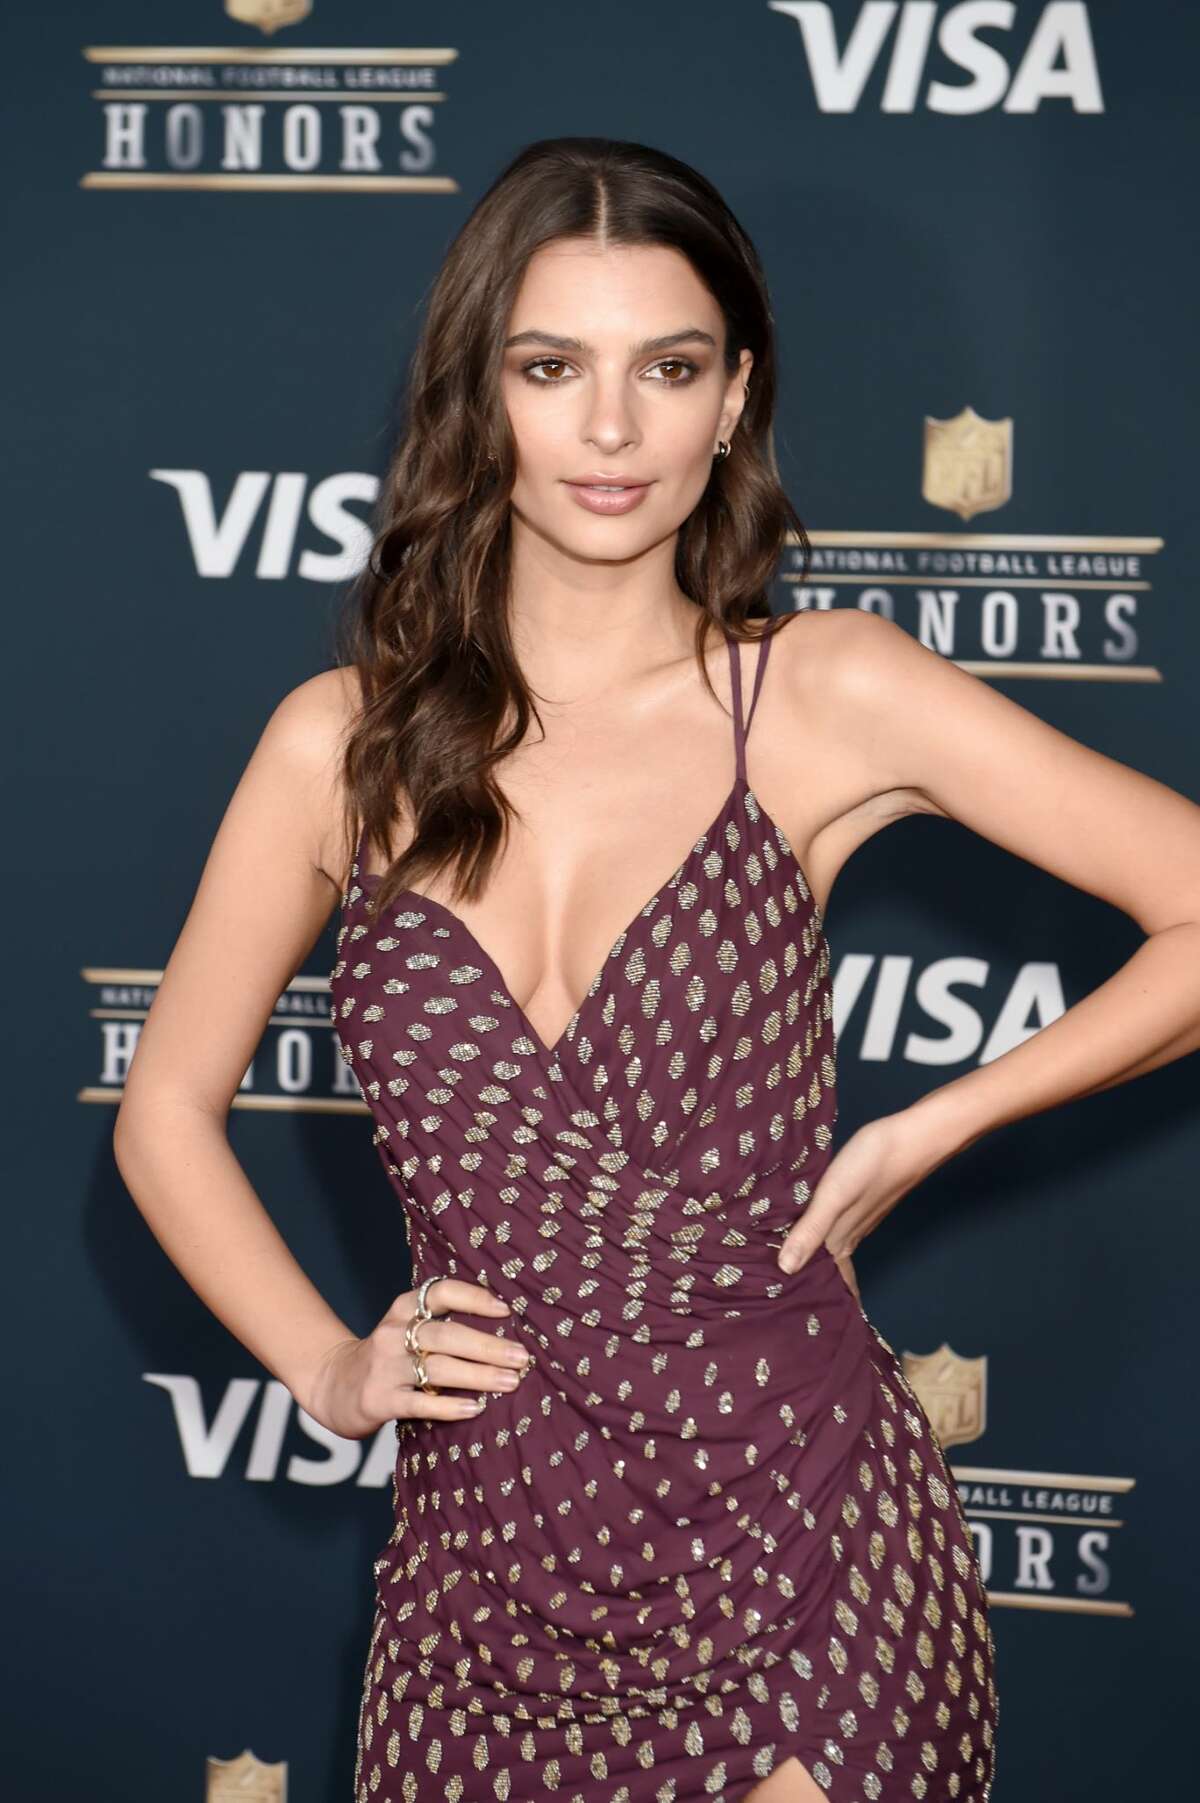 Actor Emily Ratajkowski attends 6th Annual NFL Honors at Wortham Theater Center on February 4, 2017 in Houston, Texas. (Photo by Jeff Kravitz/FilmMagic)